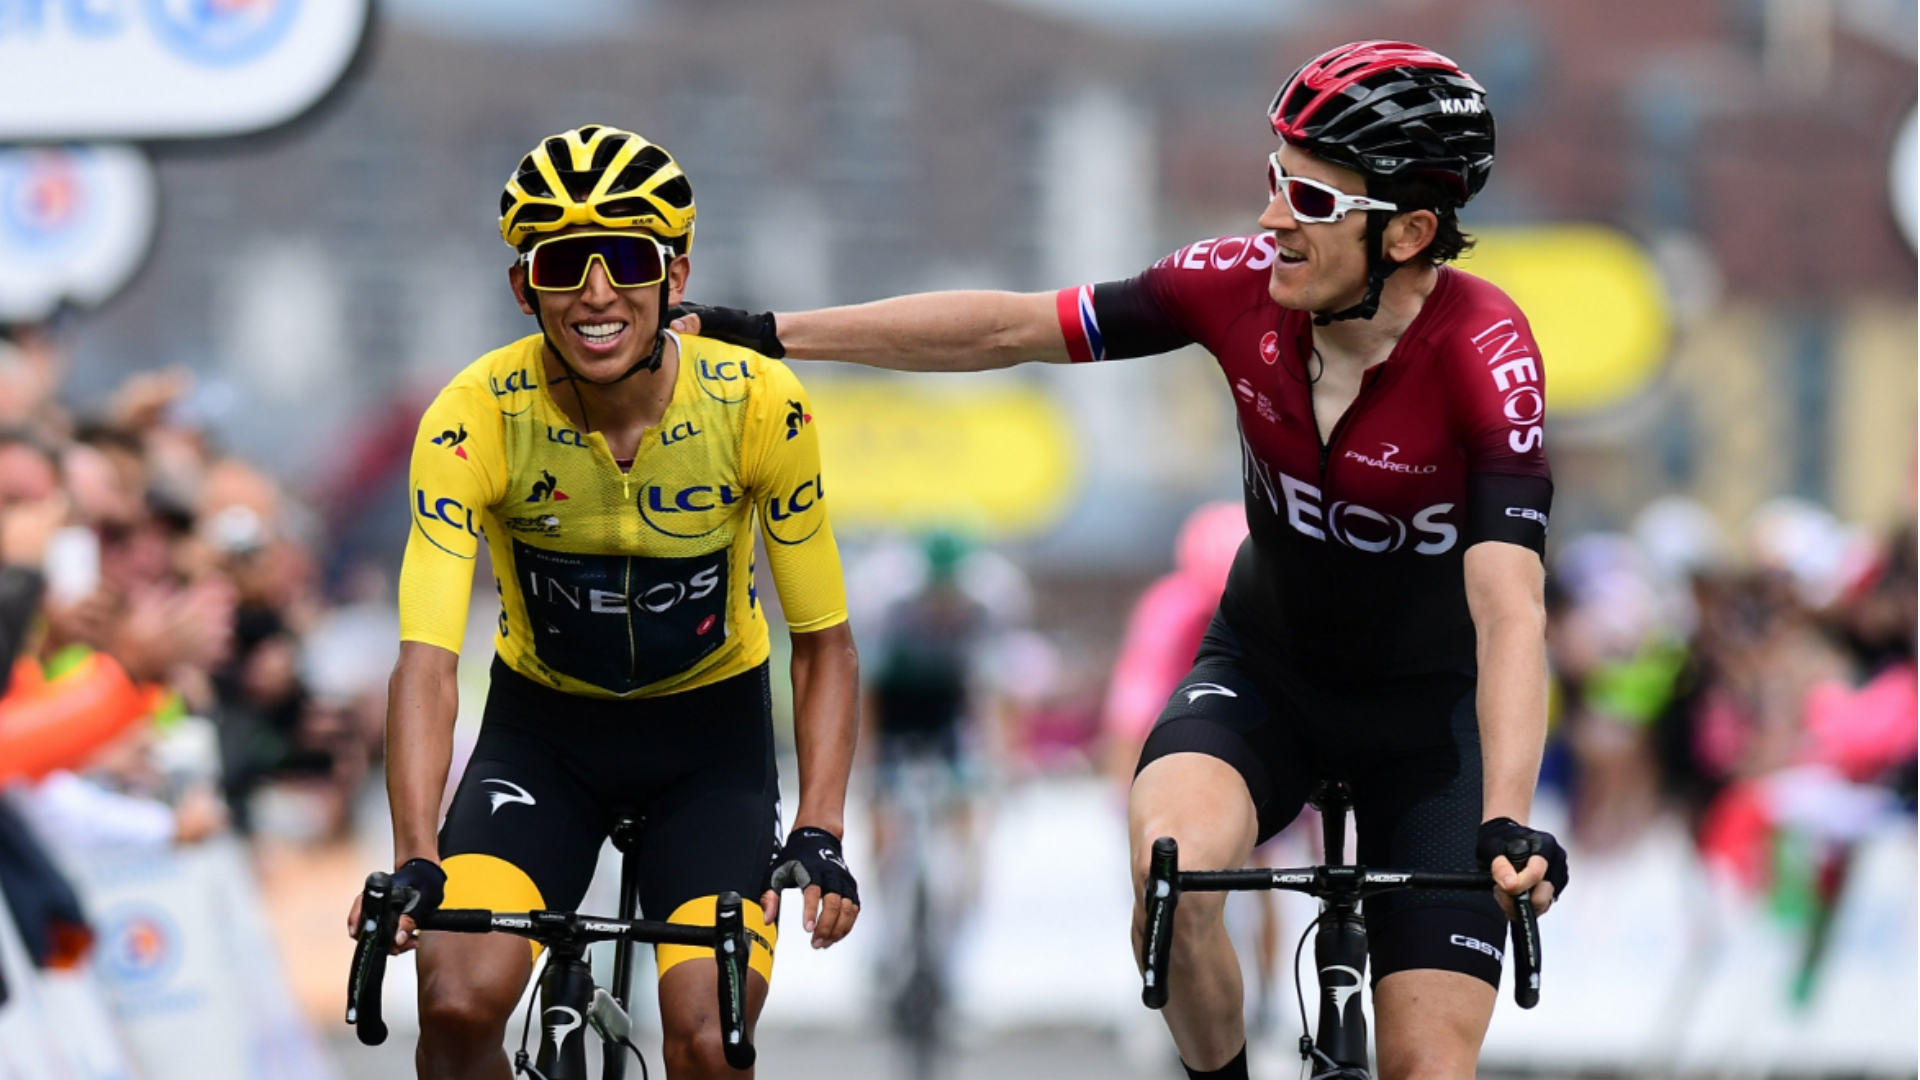 Matt White thinks a Tour de France without spectators can still be successful, but safety is the priority.